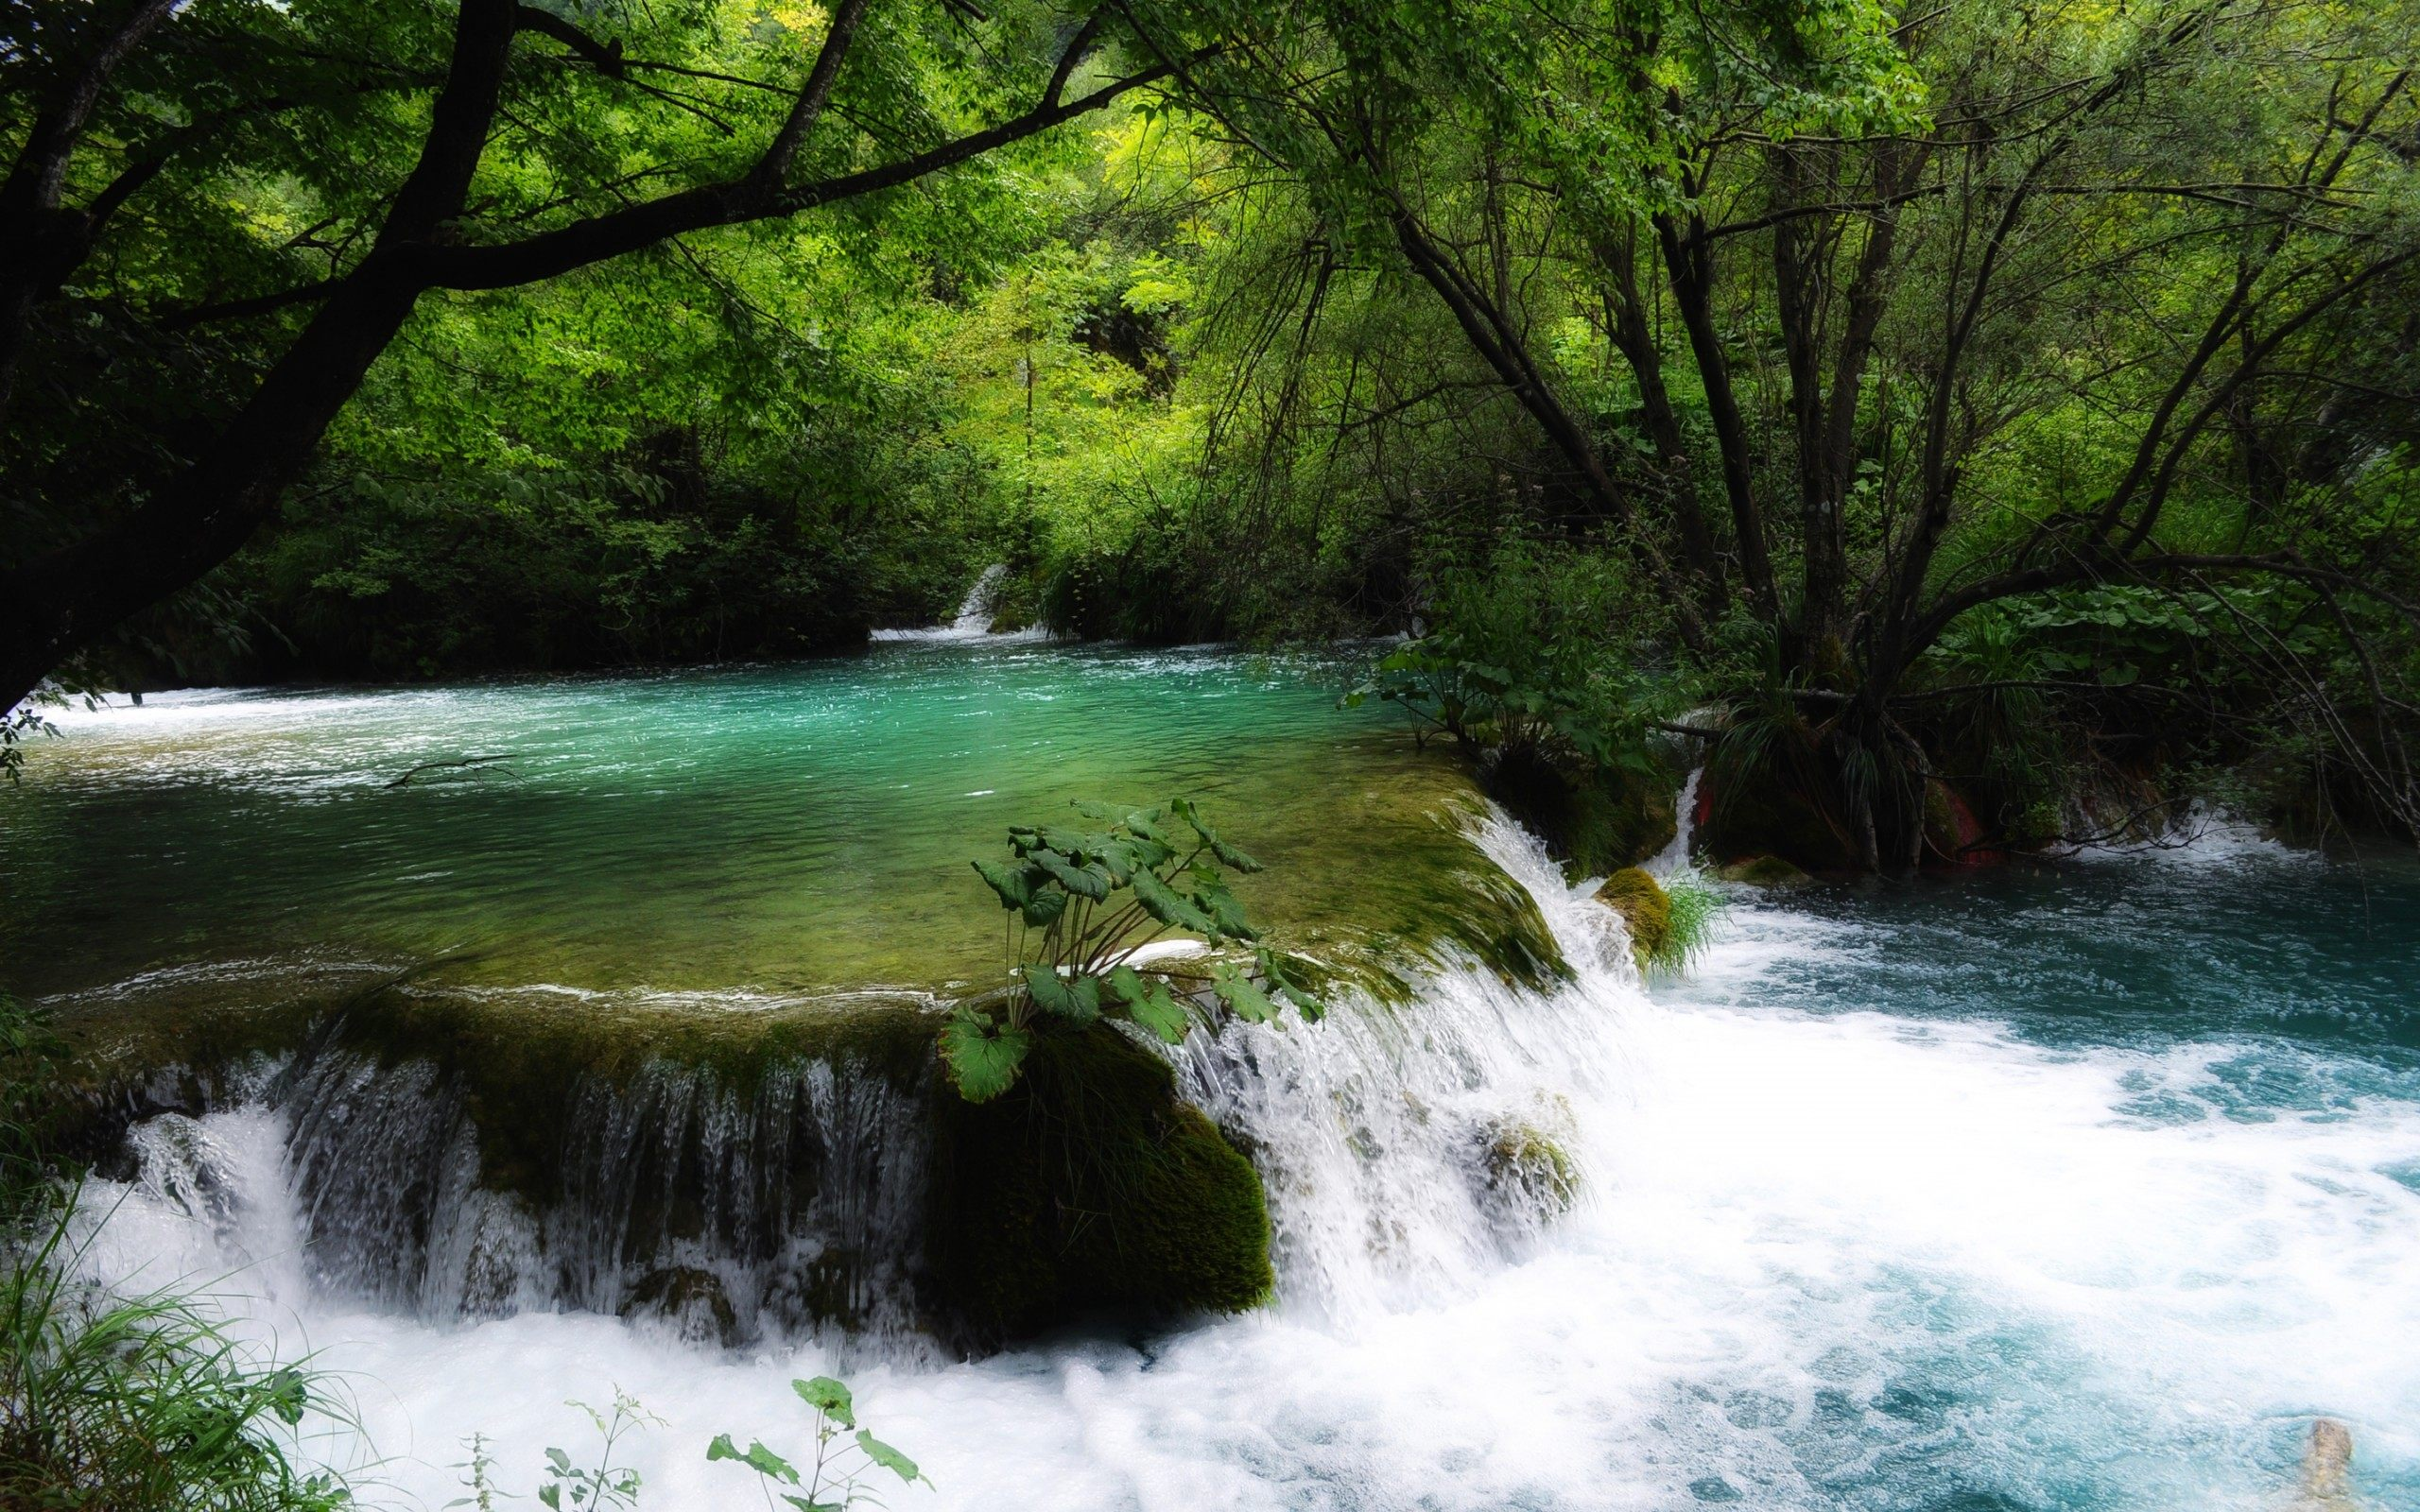 river stream beautiful nature wallpaper images picture download